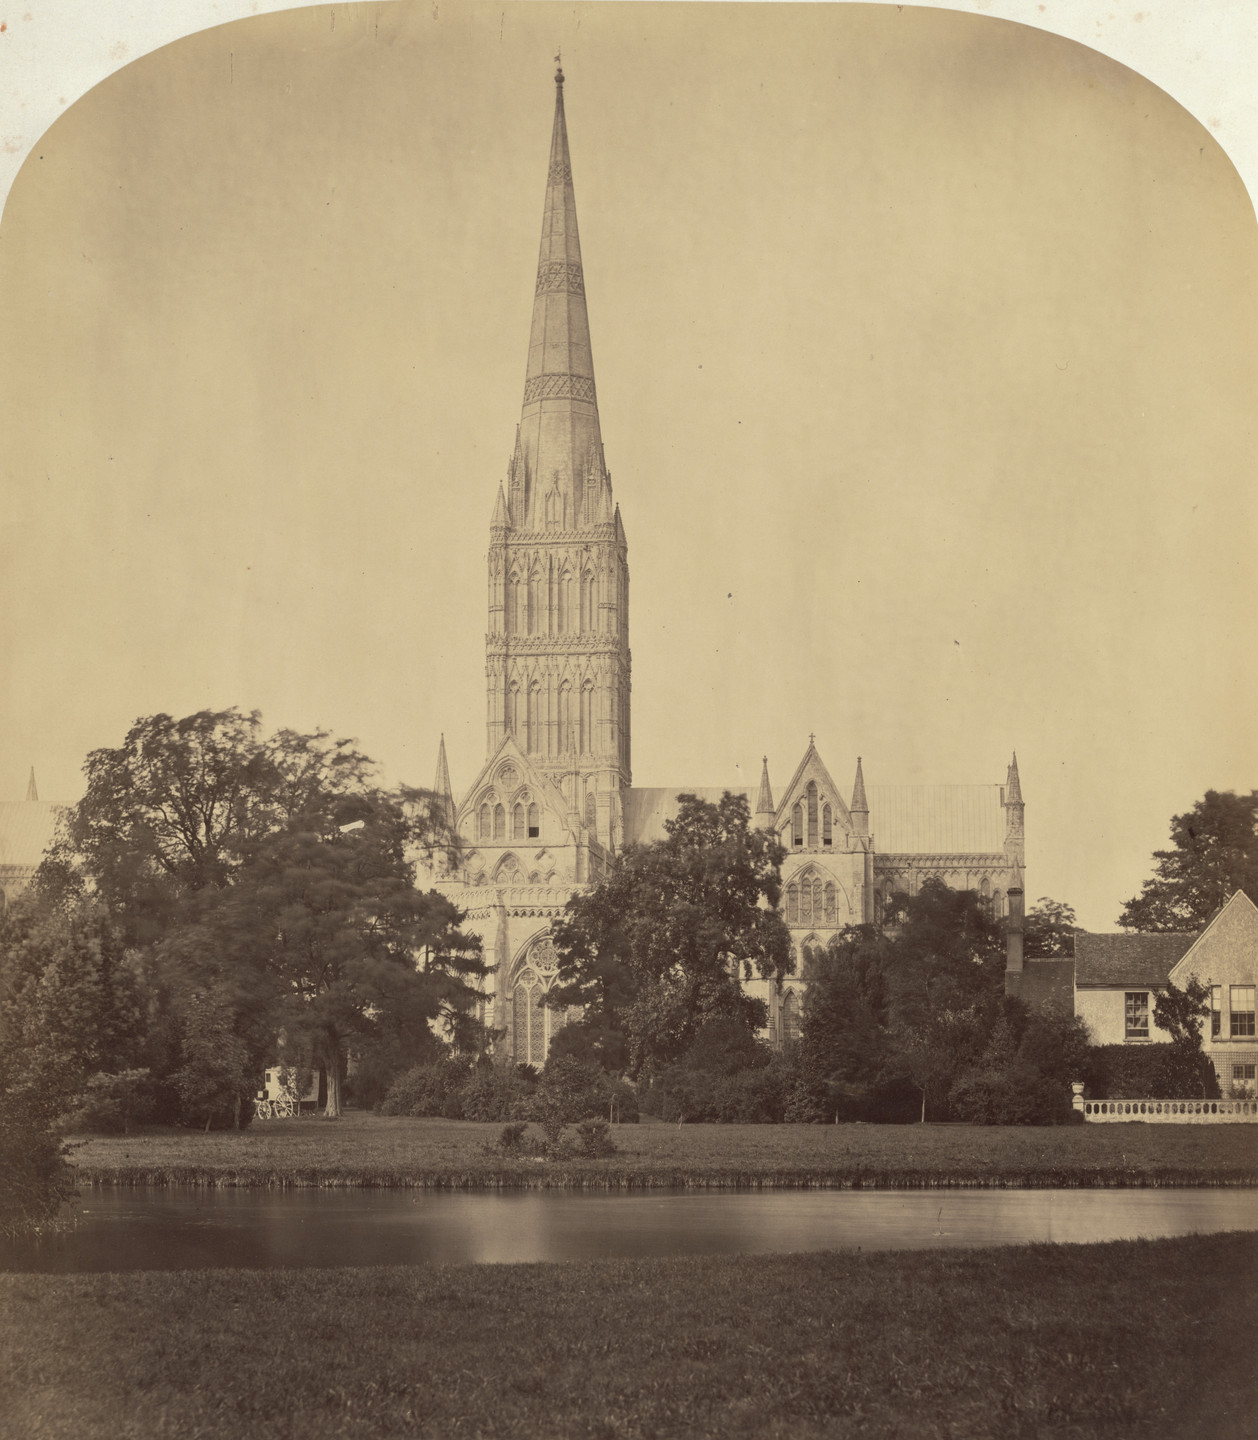 Roger Fenton. Salisbury Cathedral: The Spire. c. 1860